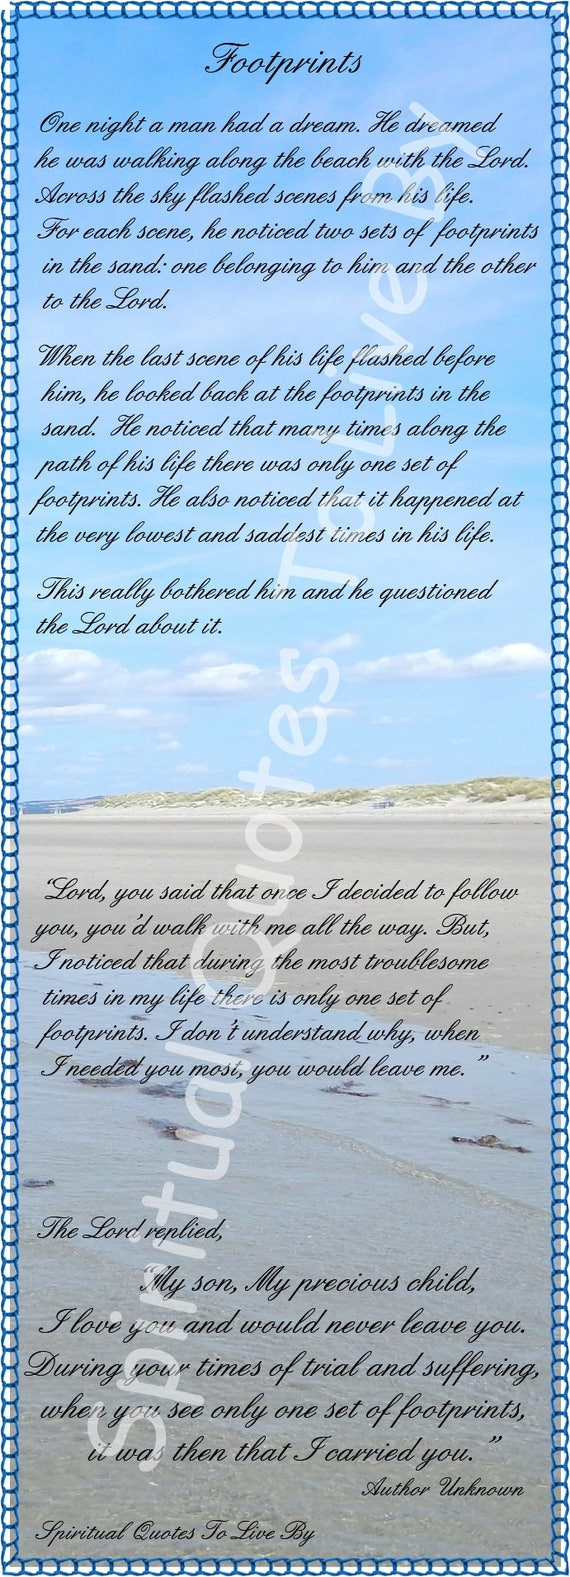 picture relating to Footprints in the Sand Poem Printable Version called Absolutely free printable footprints in just the sand bookmark